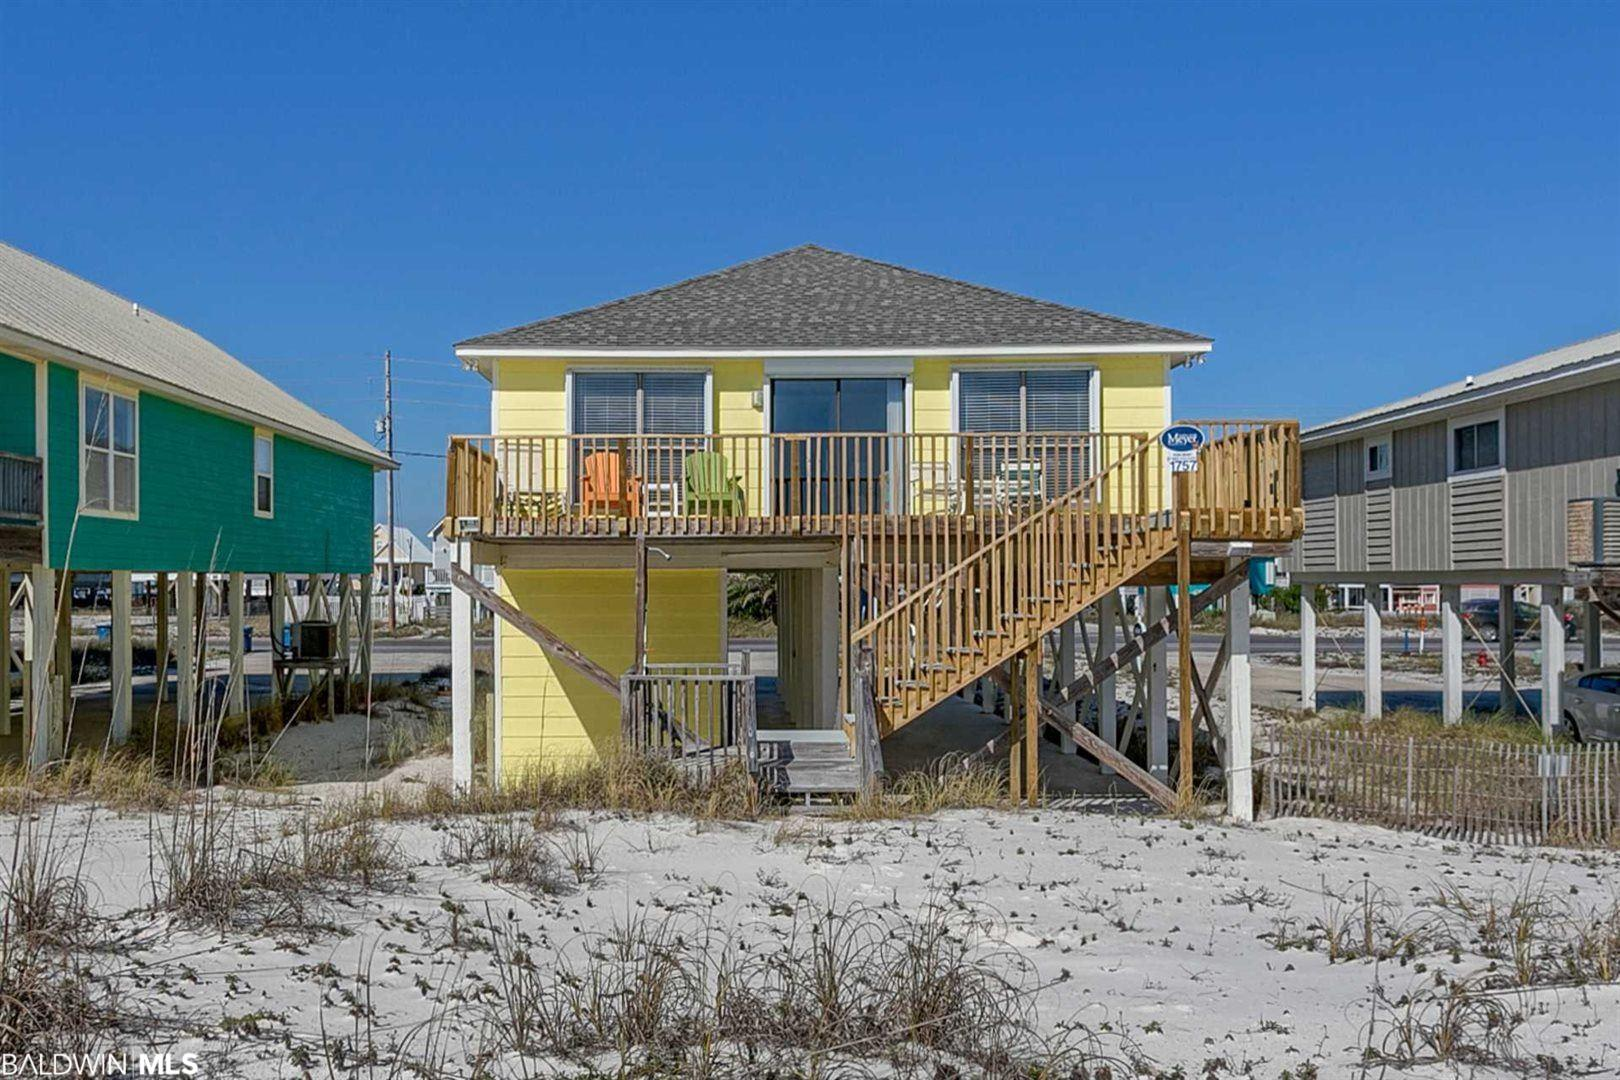 This is Three Shipps. A wonderful 4 bed gulf front home just past the pass bridge in West Beach. This house is super clean and ready to go. No damage from Sally. The large gulf front deck has wide open views of the Beach and Gulf waters. This 4 bed home sleeps 10 and has a solid rental history. If you are looking for a Gulf Front property Don't let this ship pass you by.